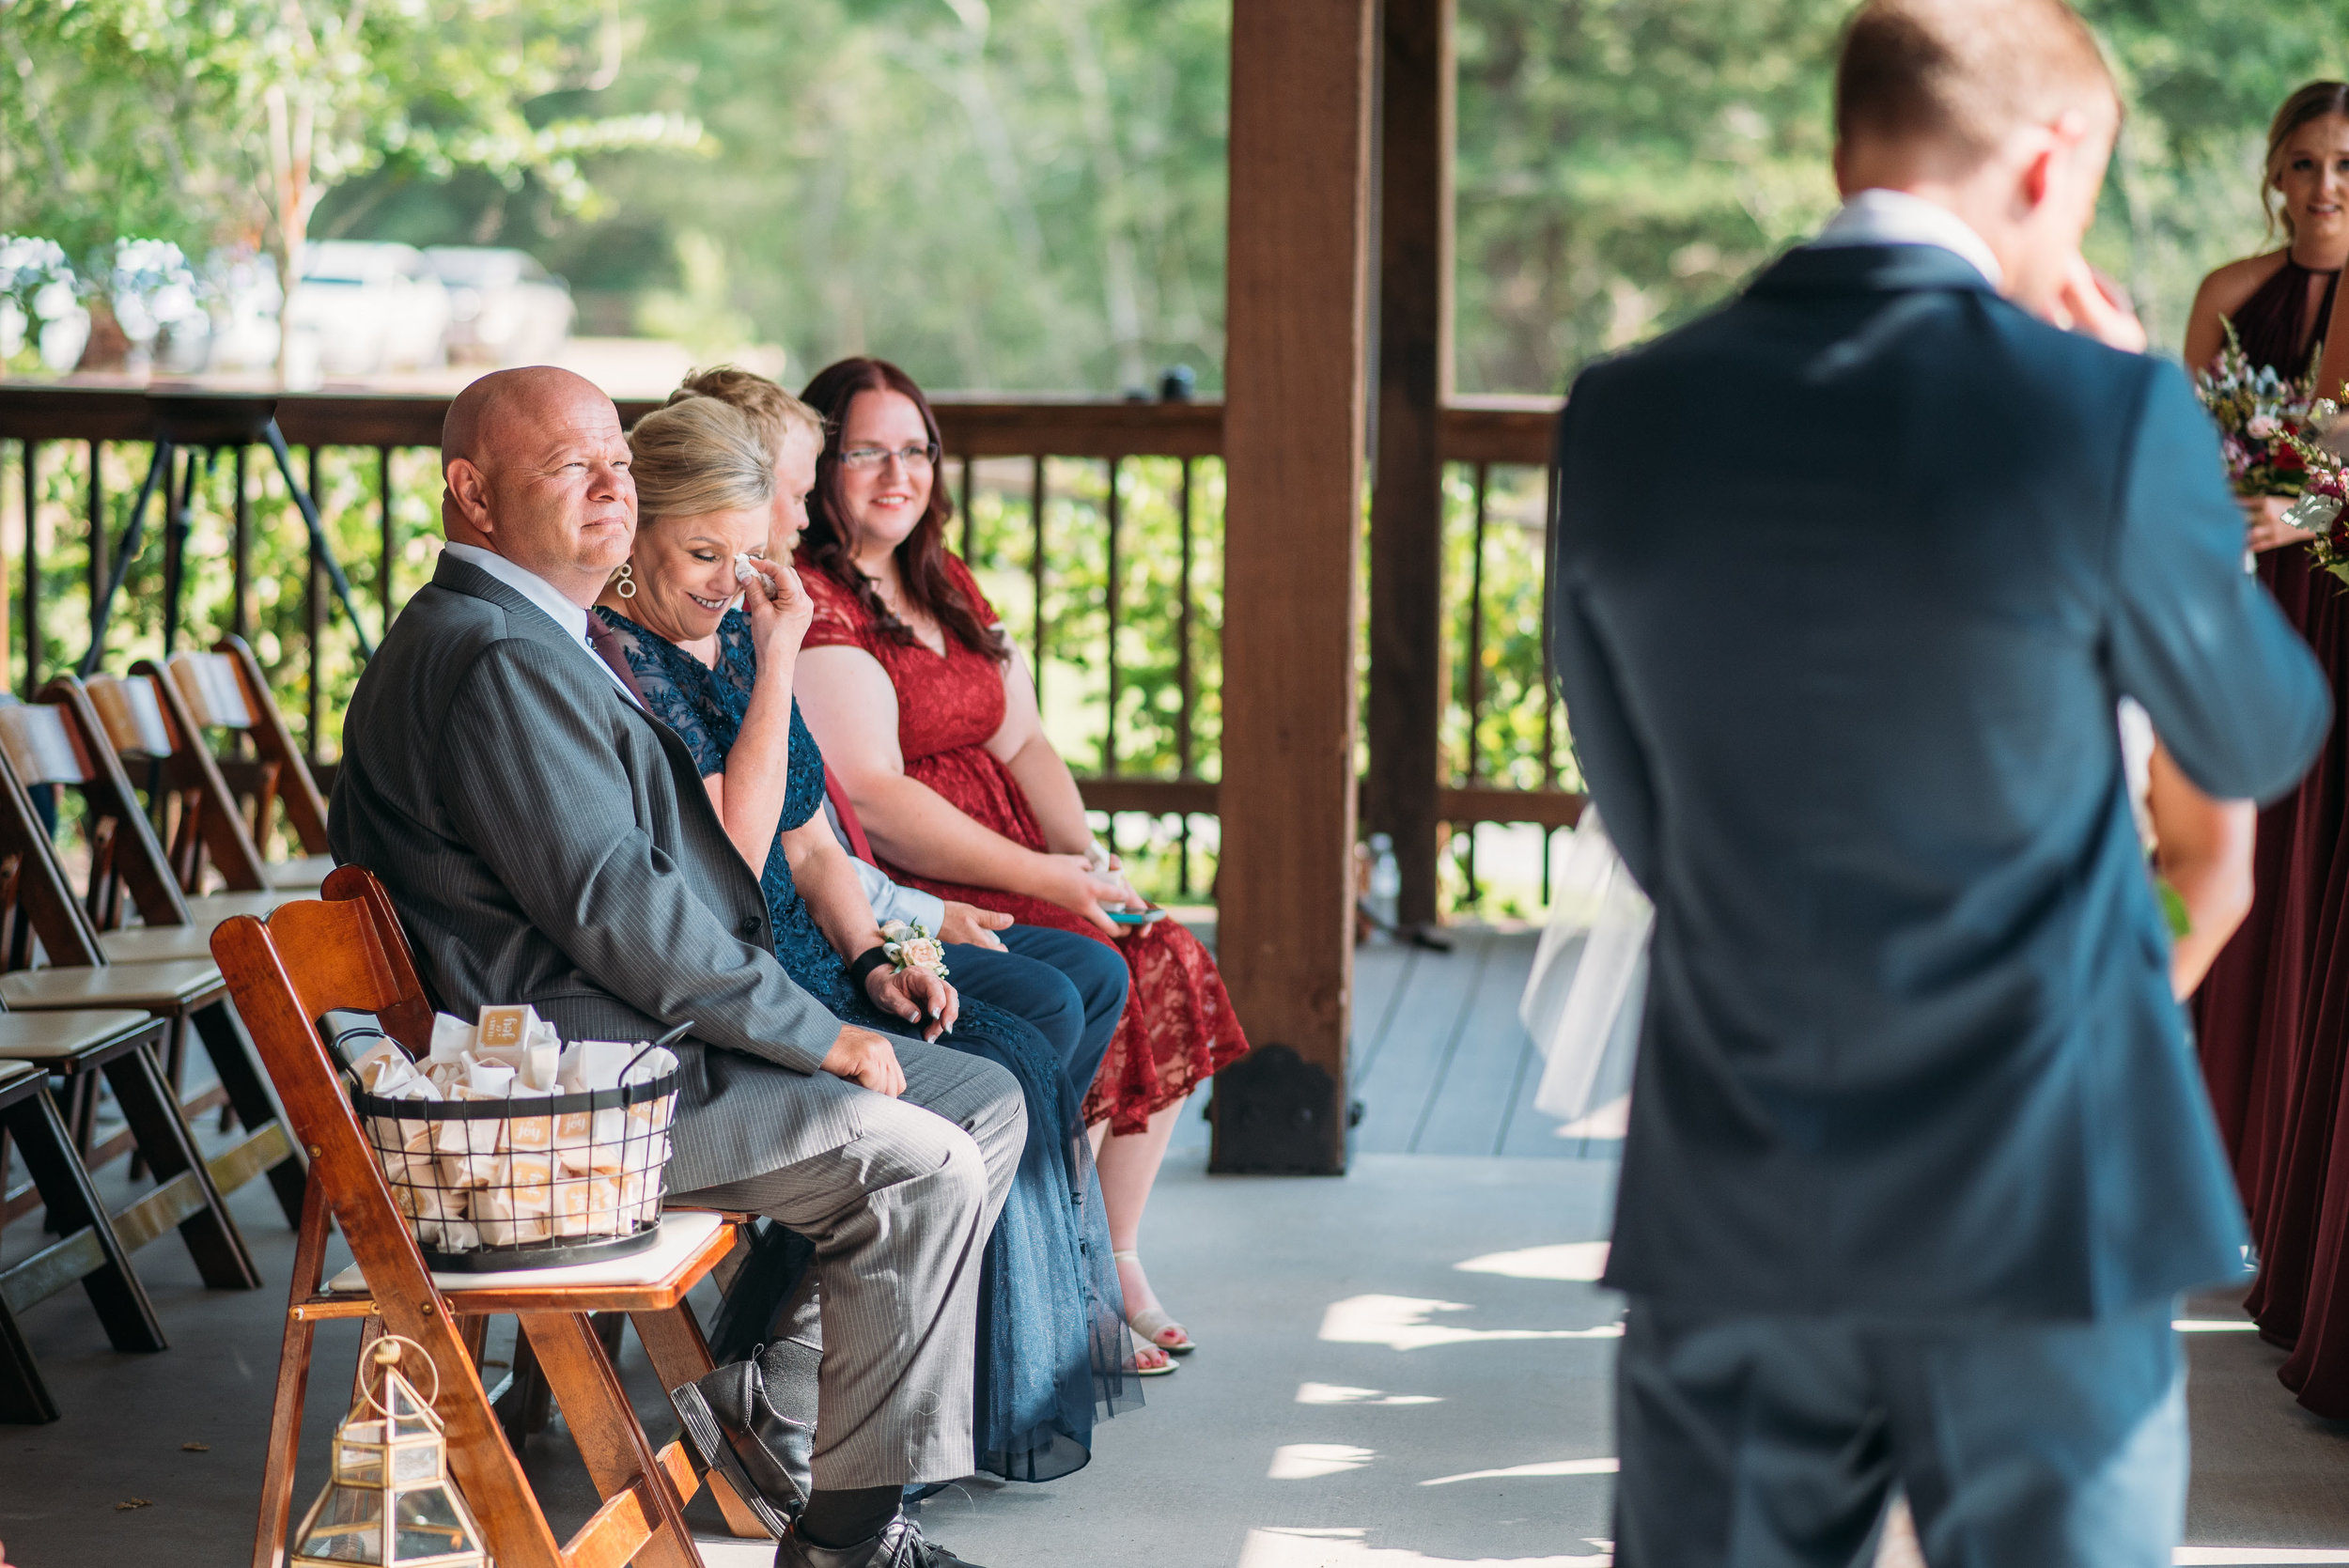 EmilyCody-Peach-Creek-Ranch-Wedding-Ceremony-Bridals-Engagement-College-Station-Photographer-Videographer-San-Angel-Photo-0171.jpg